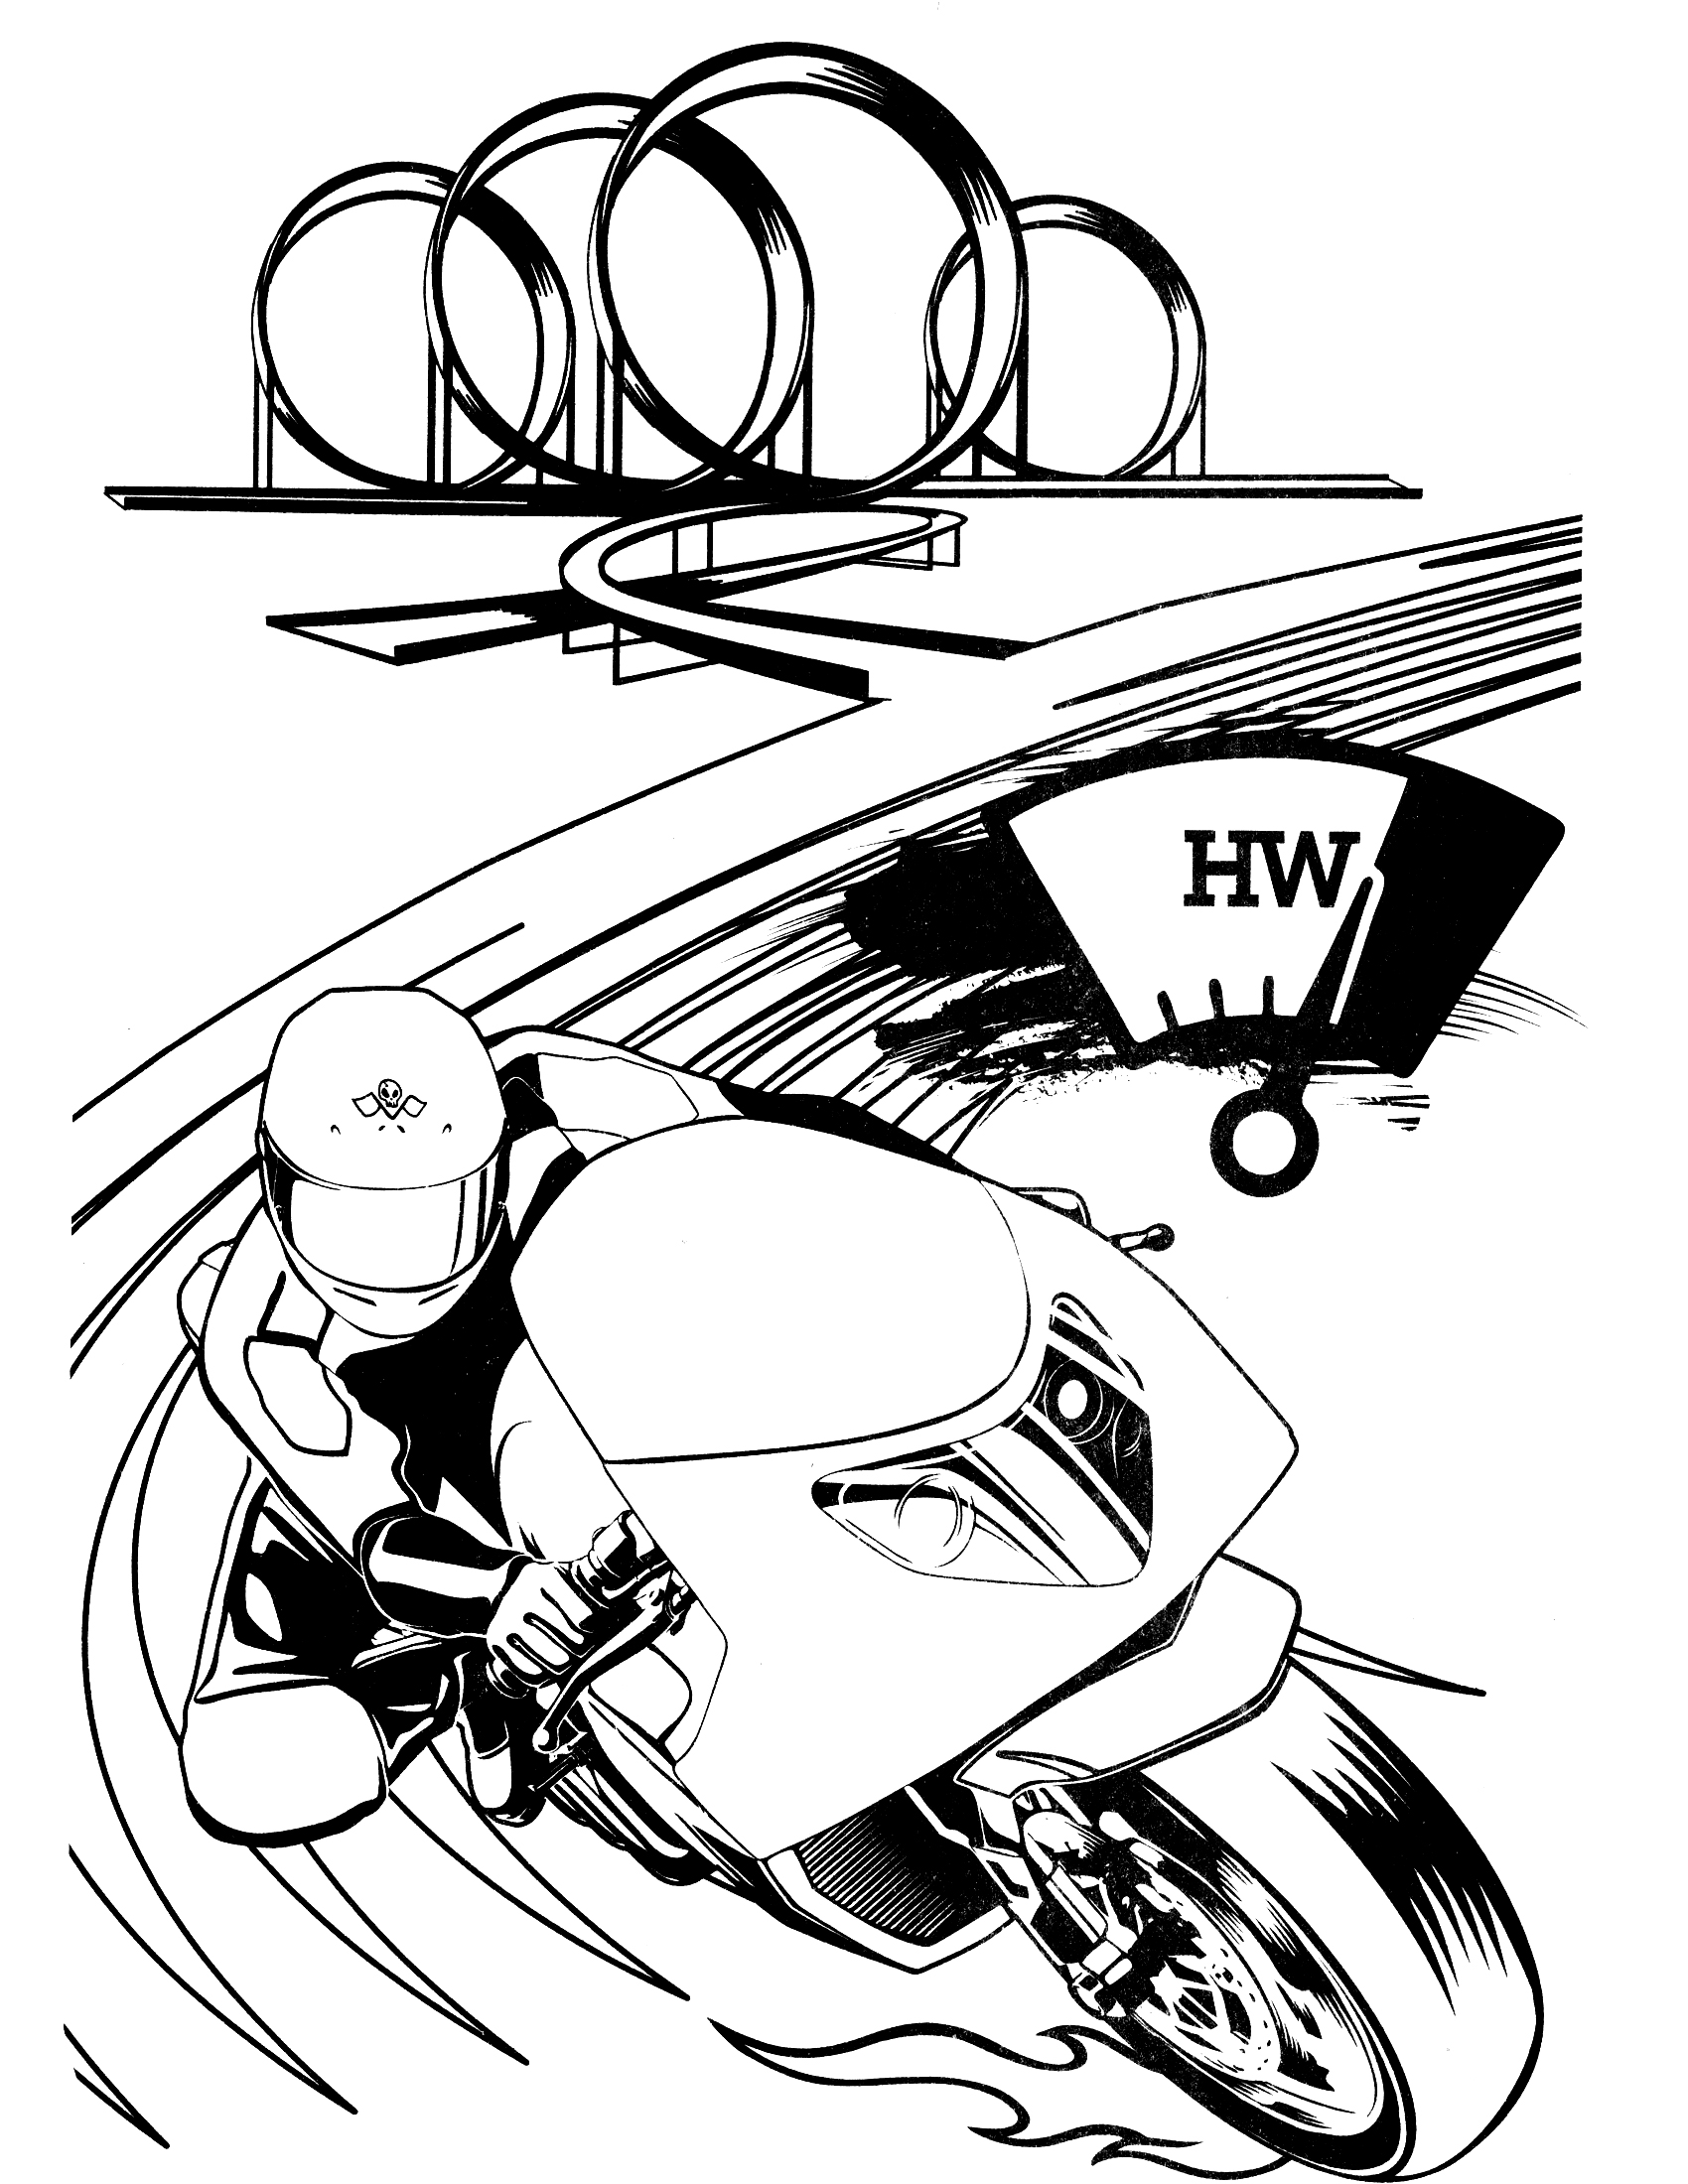 Hot motorcycle clipart image royalty free hot wheels motorcycle coloring | Clipart Panda - Free ... image royalty free